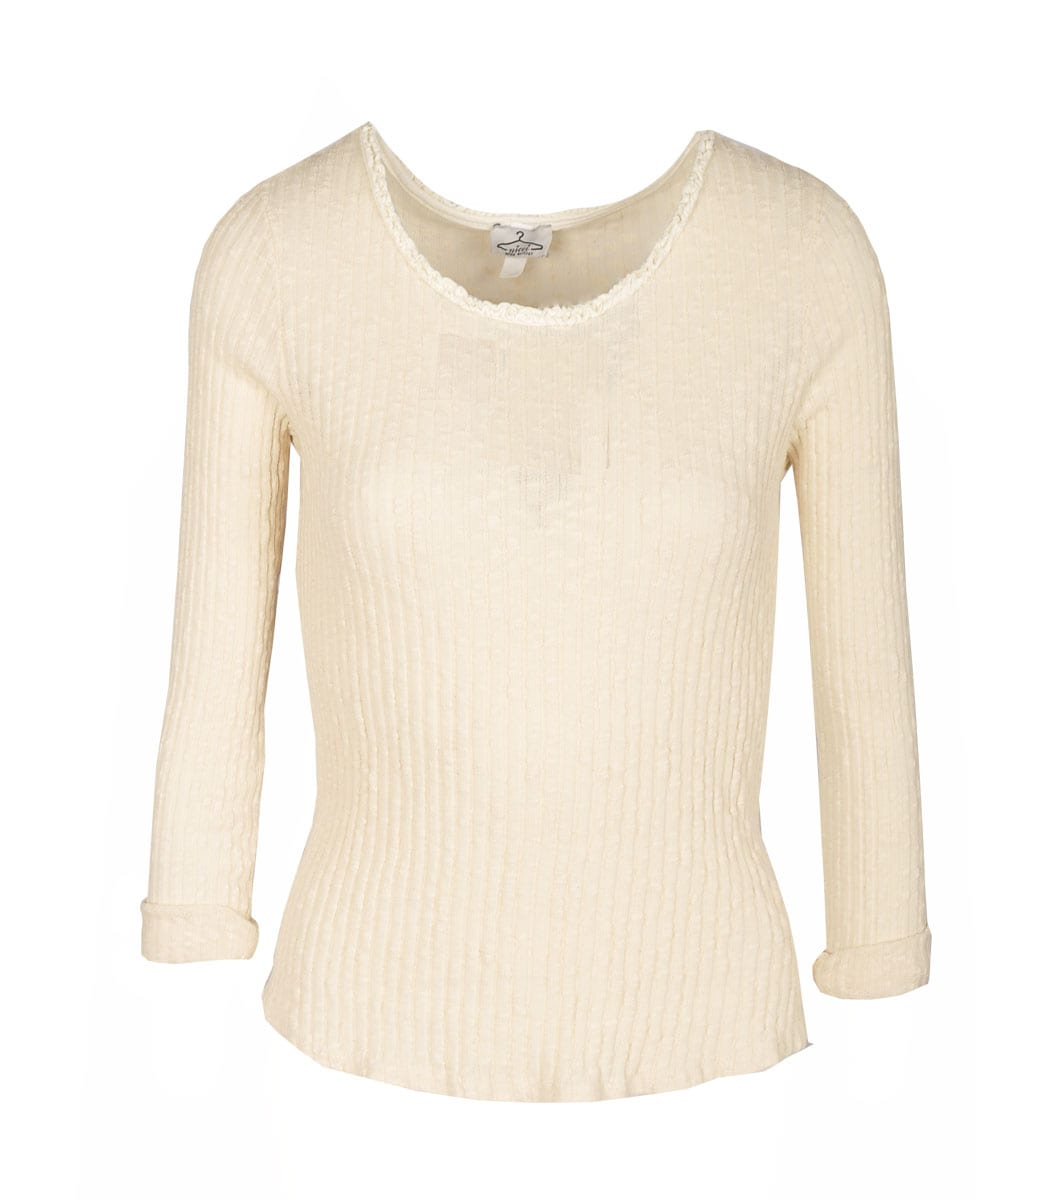 Basic long sleeve ribbed top